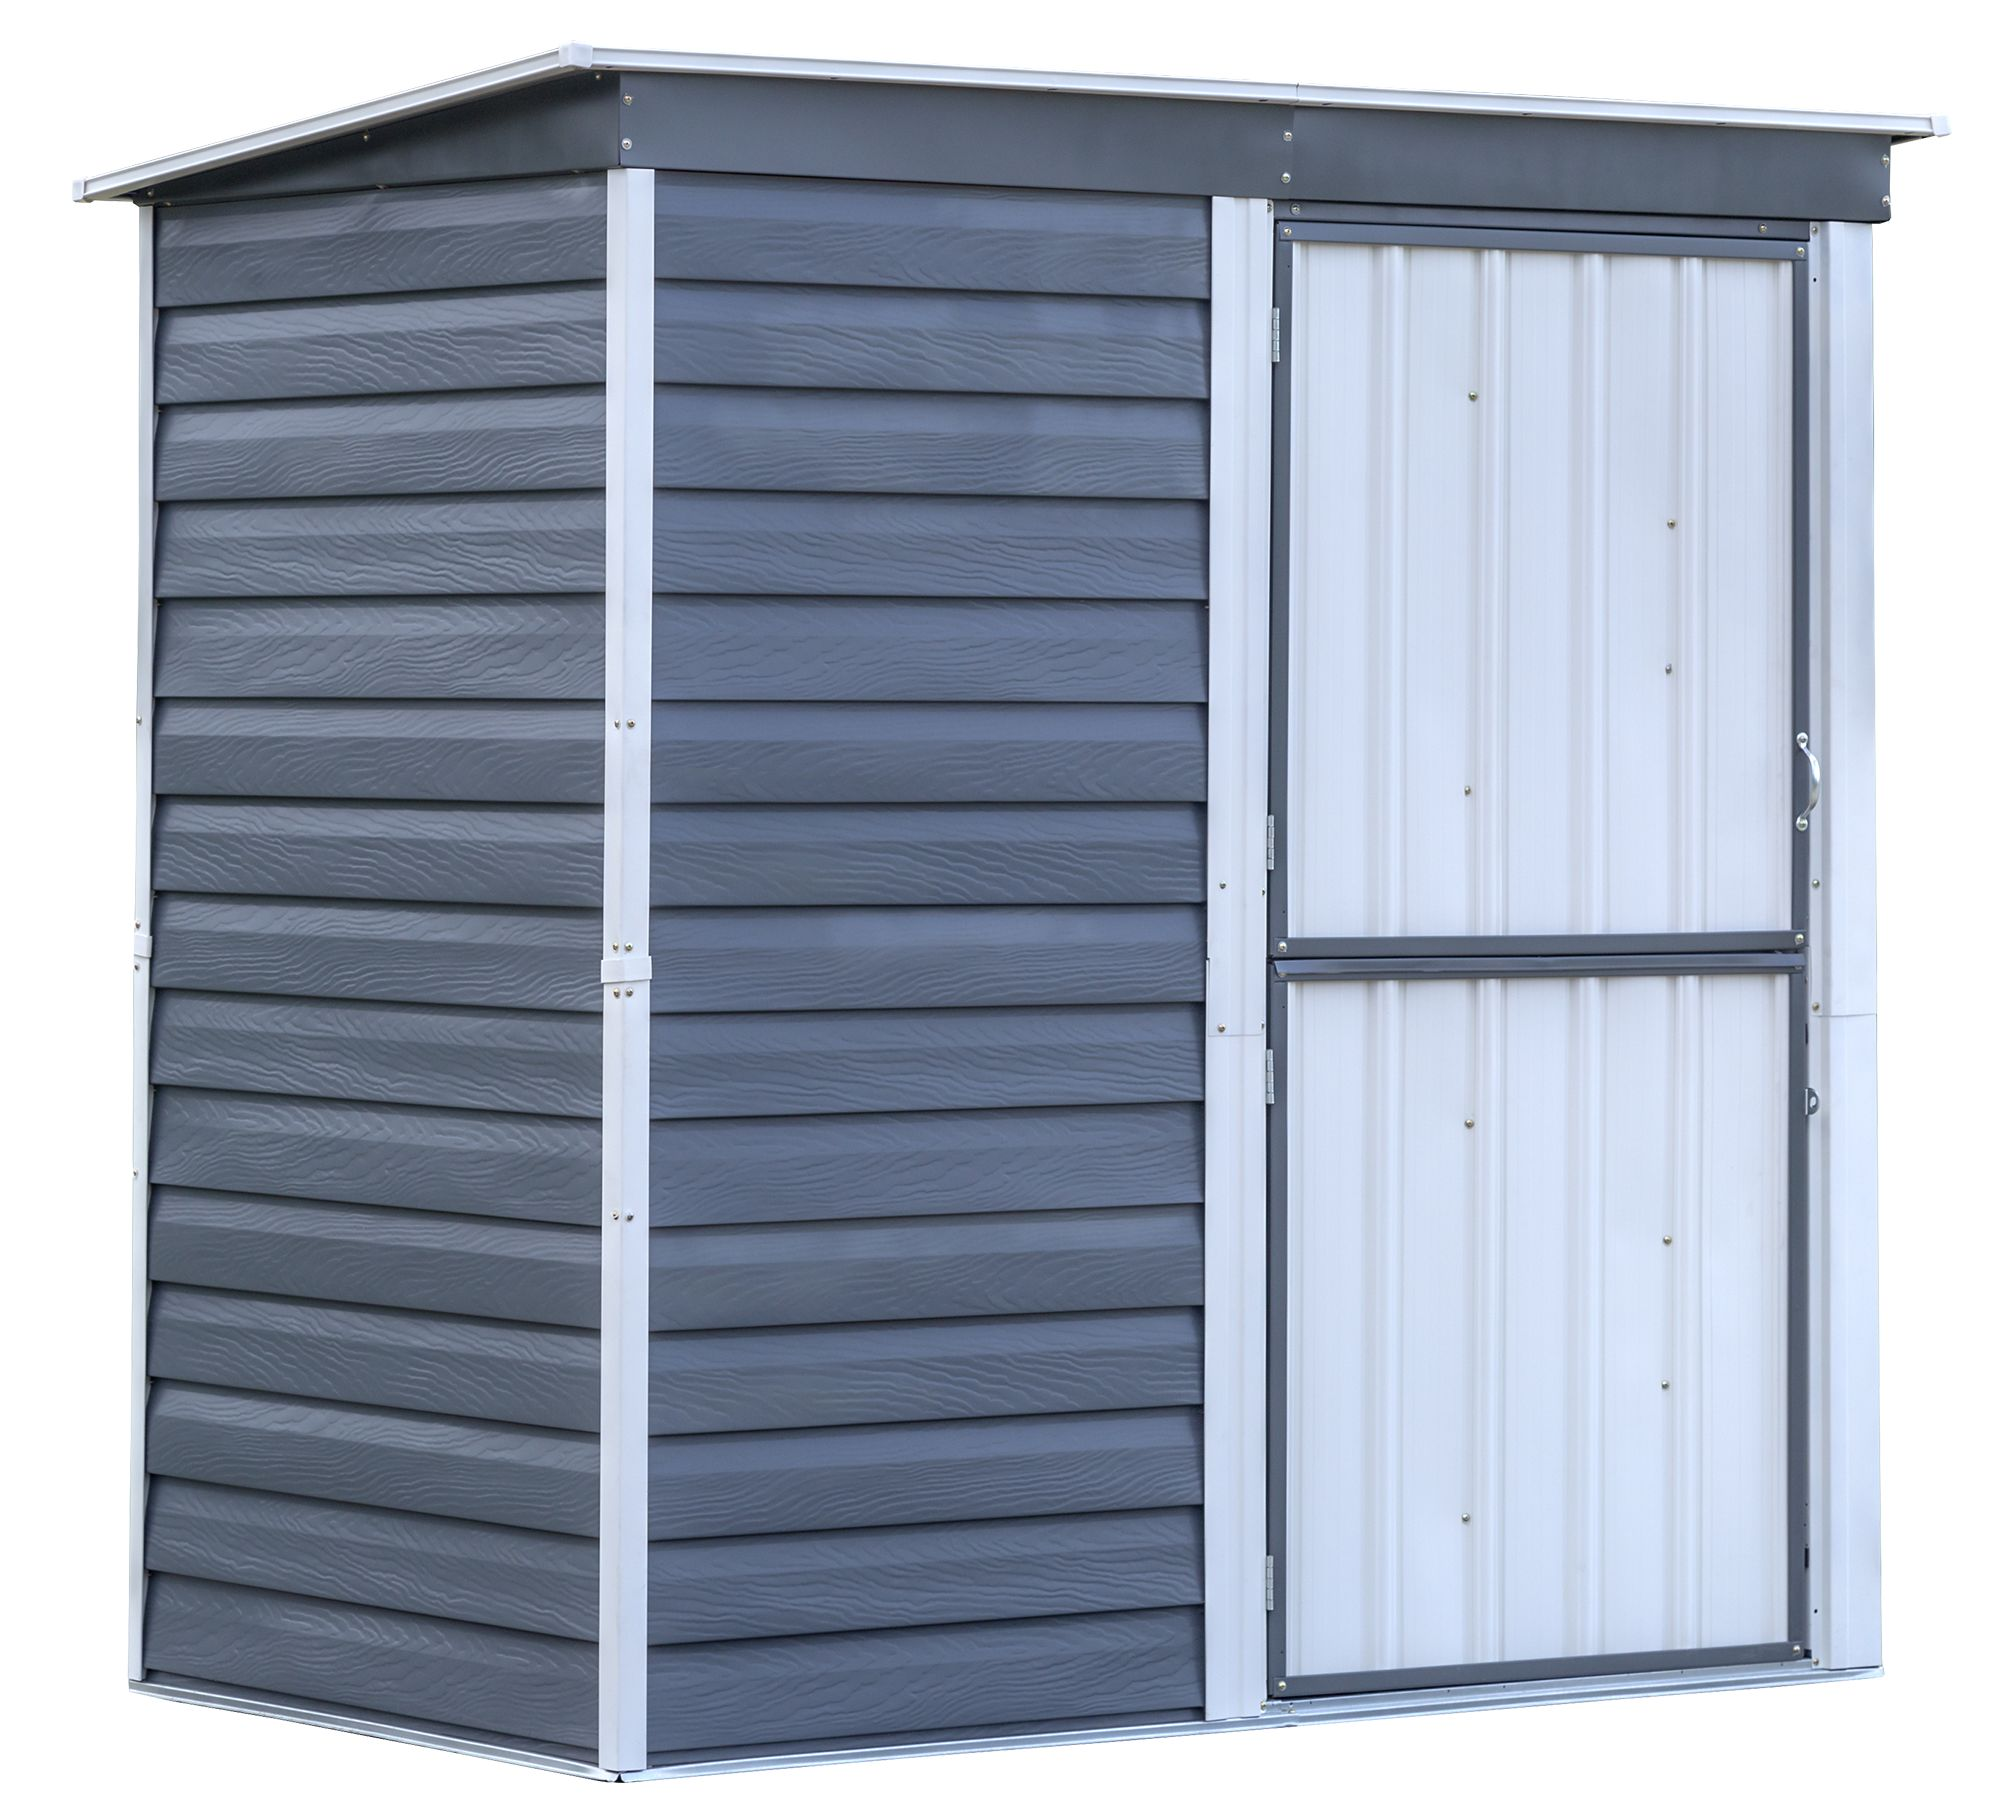 Shed-in-a-Box Steel Storage Shed 6 x 4 ft. Galvanized Charcoal/Cream